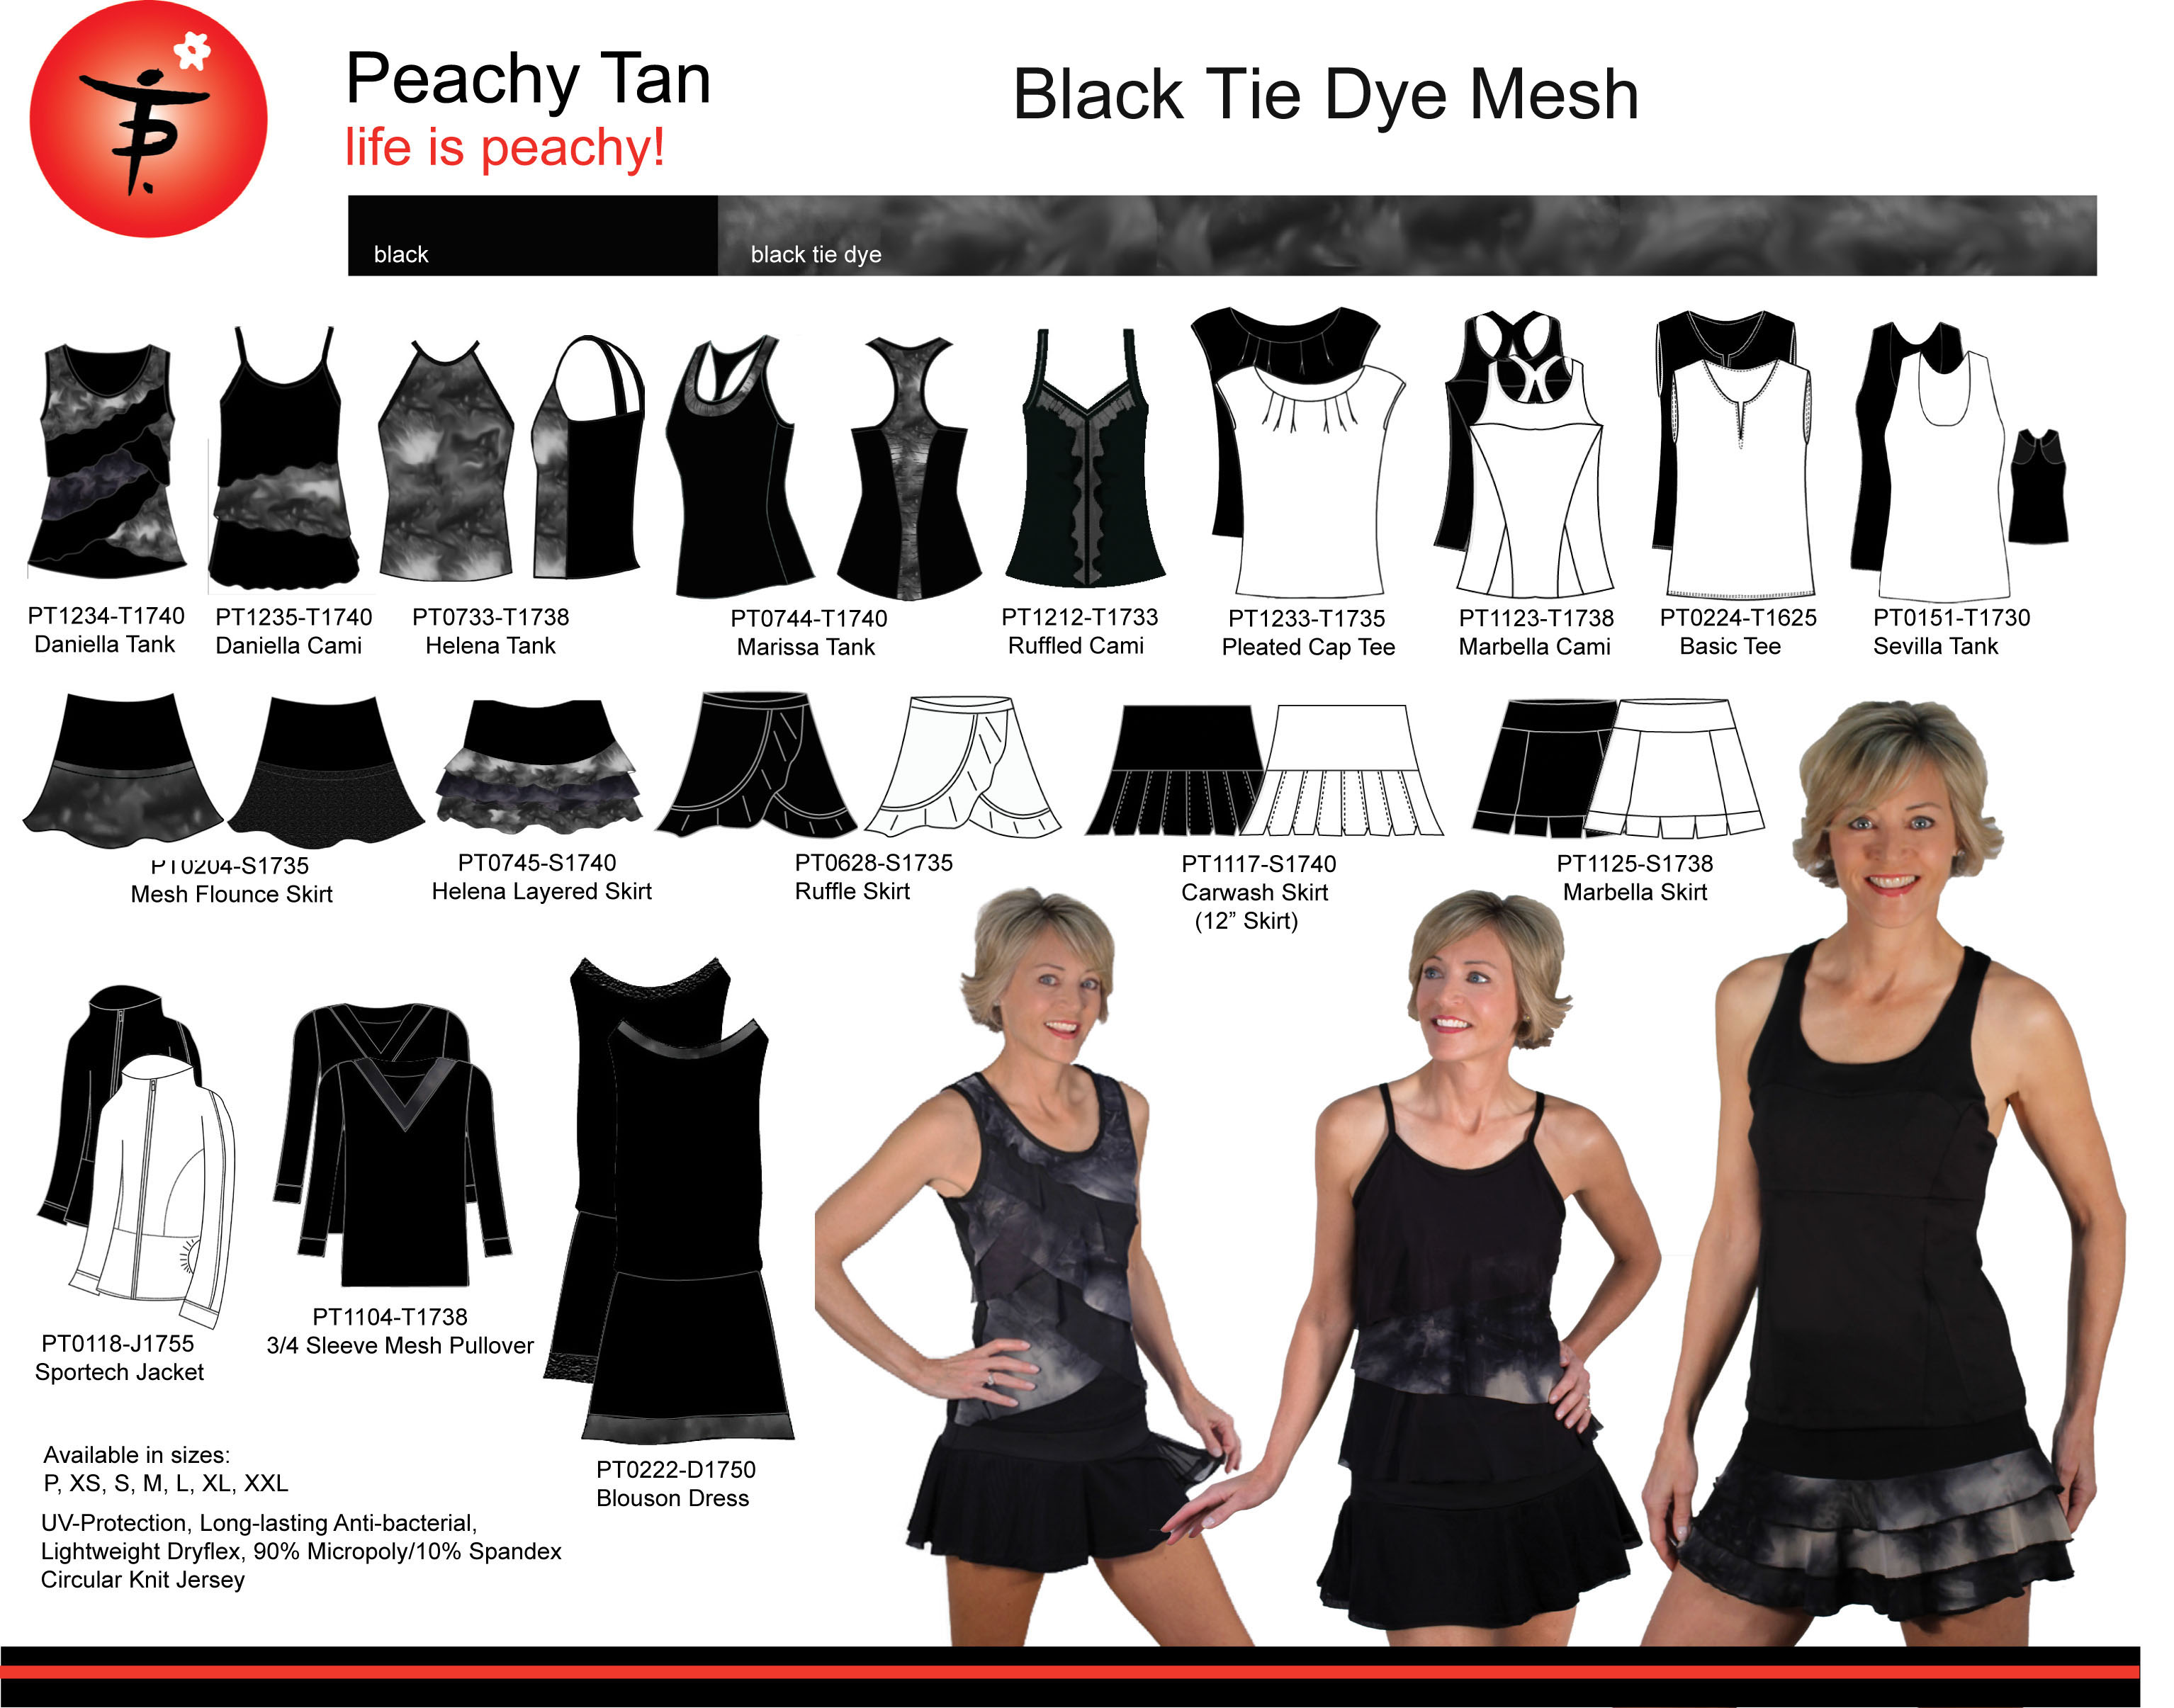 black-tie-dye-page-edited-2.jpg